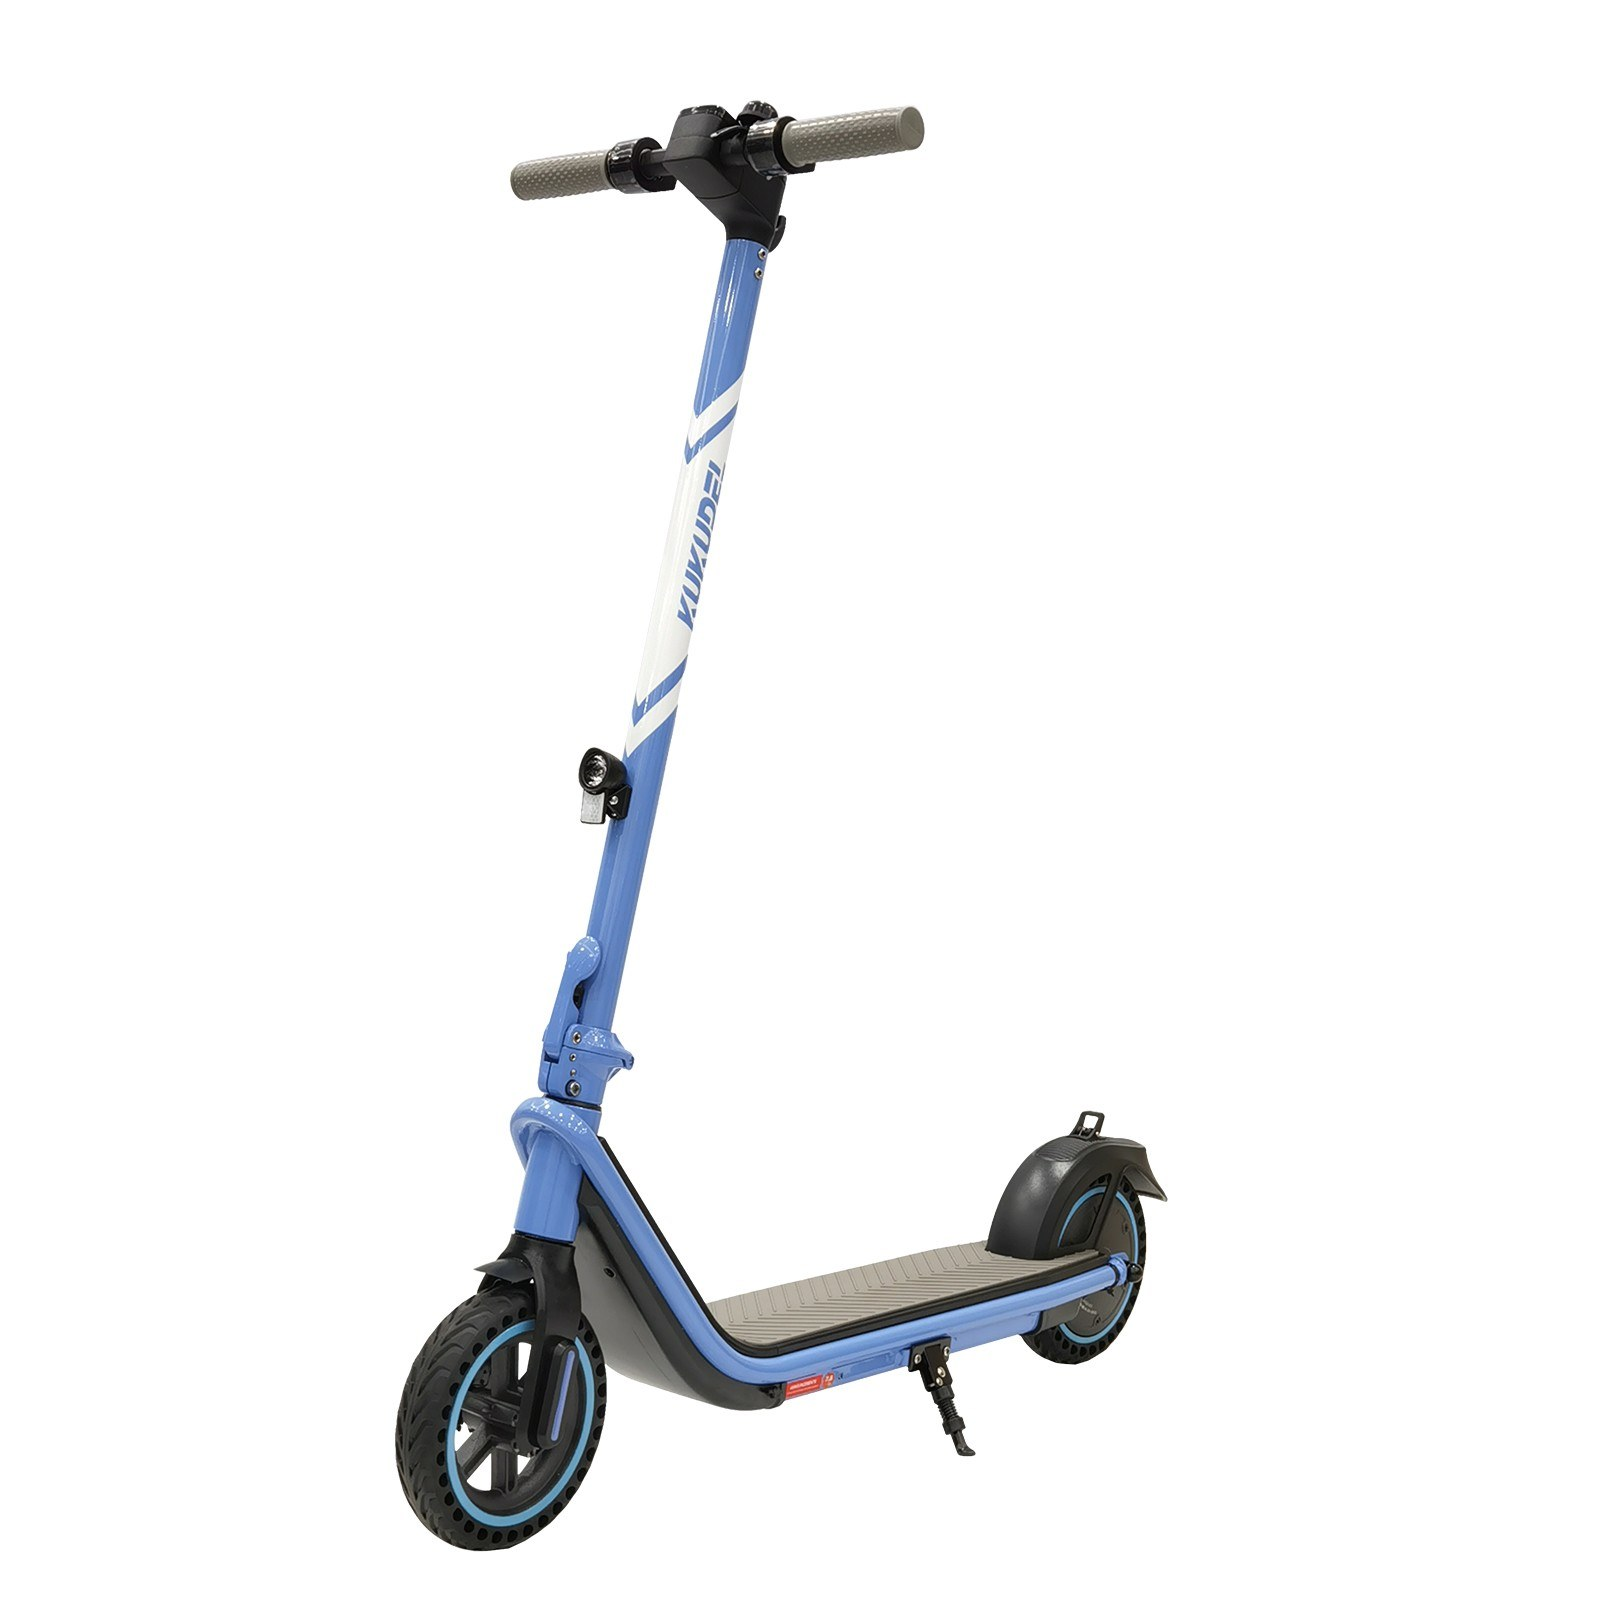 Cafago - 40% OFF 350W 8.5 Inch Two Wheel Folding Electric Scooter with 7.5Ah 22-26km Range,free shipping+$288.80